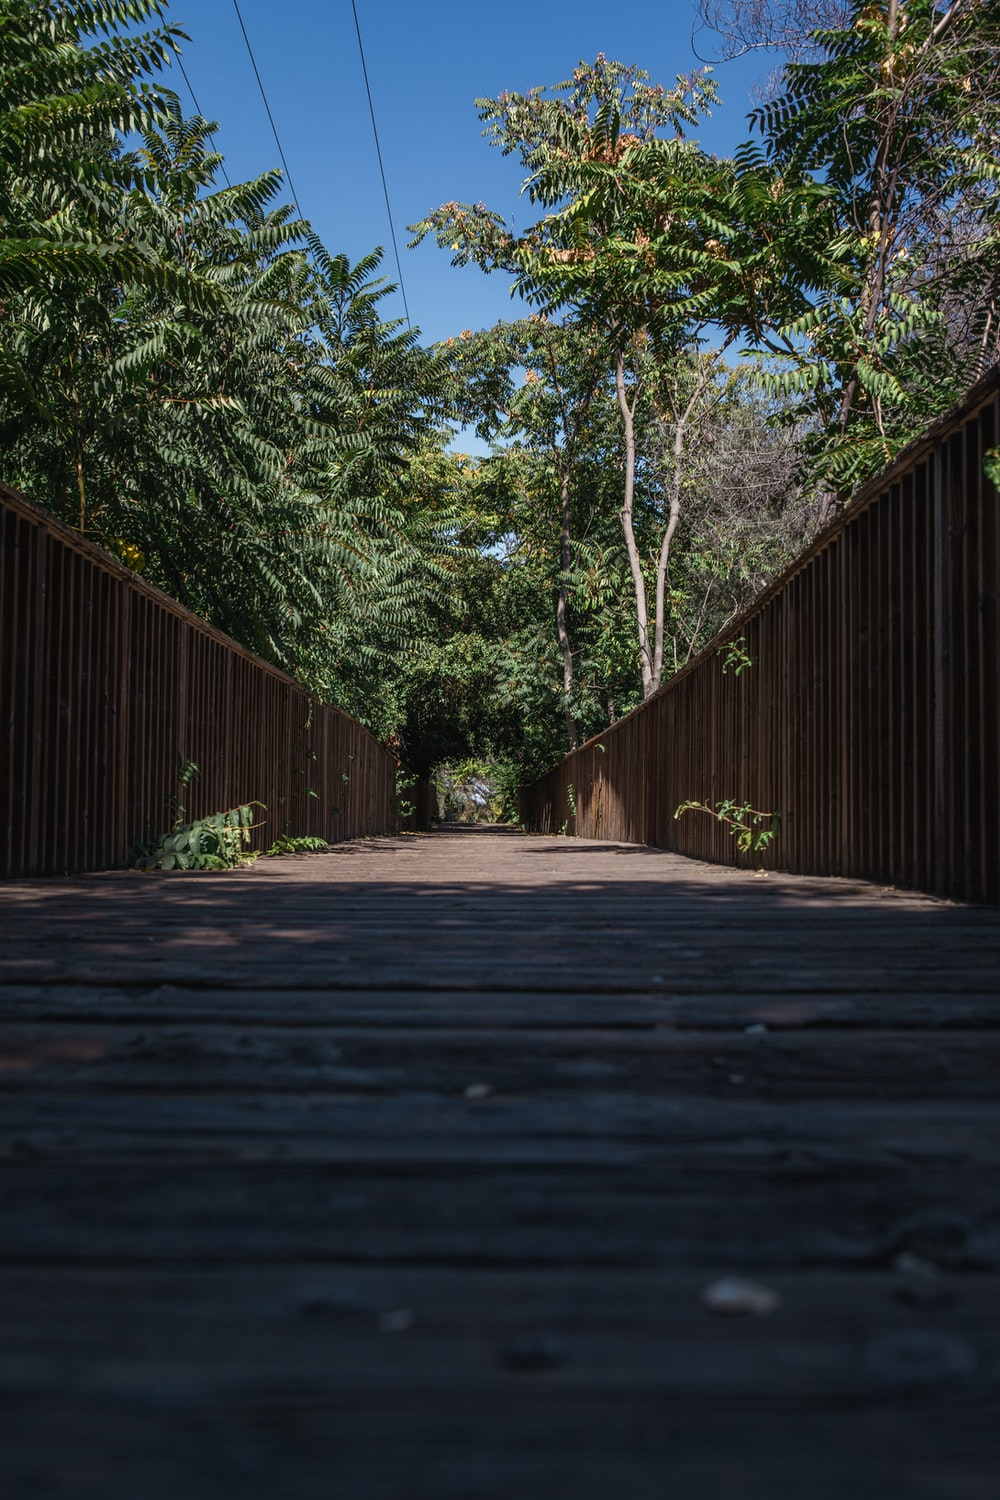 brown wooden pathway between green trees